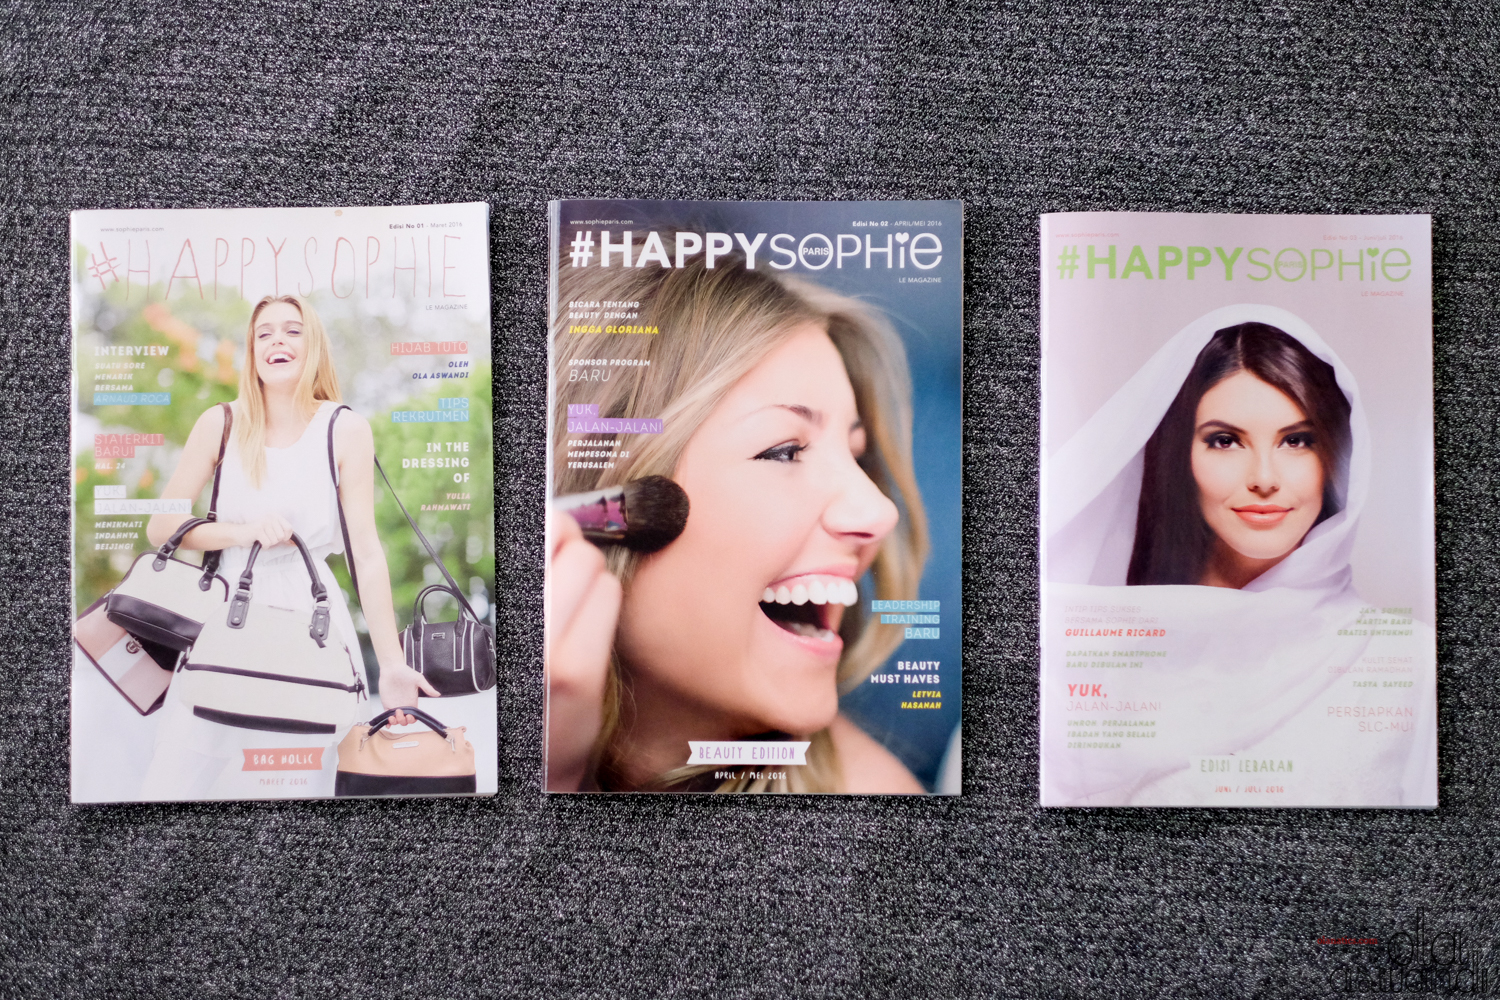 happy-sophie-12 Media Exposure: #HappySophie Magazine